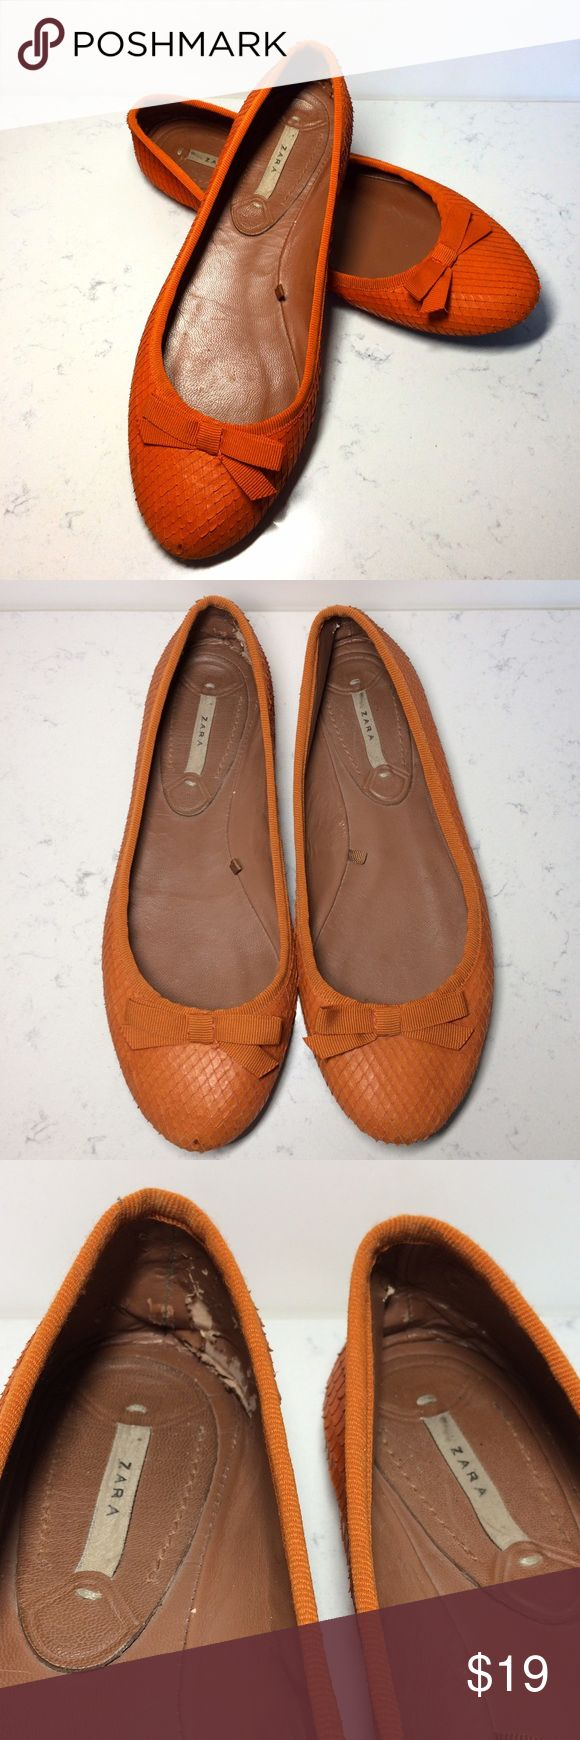 Zara Orange Flats In WELL USED condition has signs of wear on the inside soles with small marks around the edges back has signs of wear as well with soles that have marks. 014563761 Zara Shoes Flats & Loafers